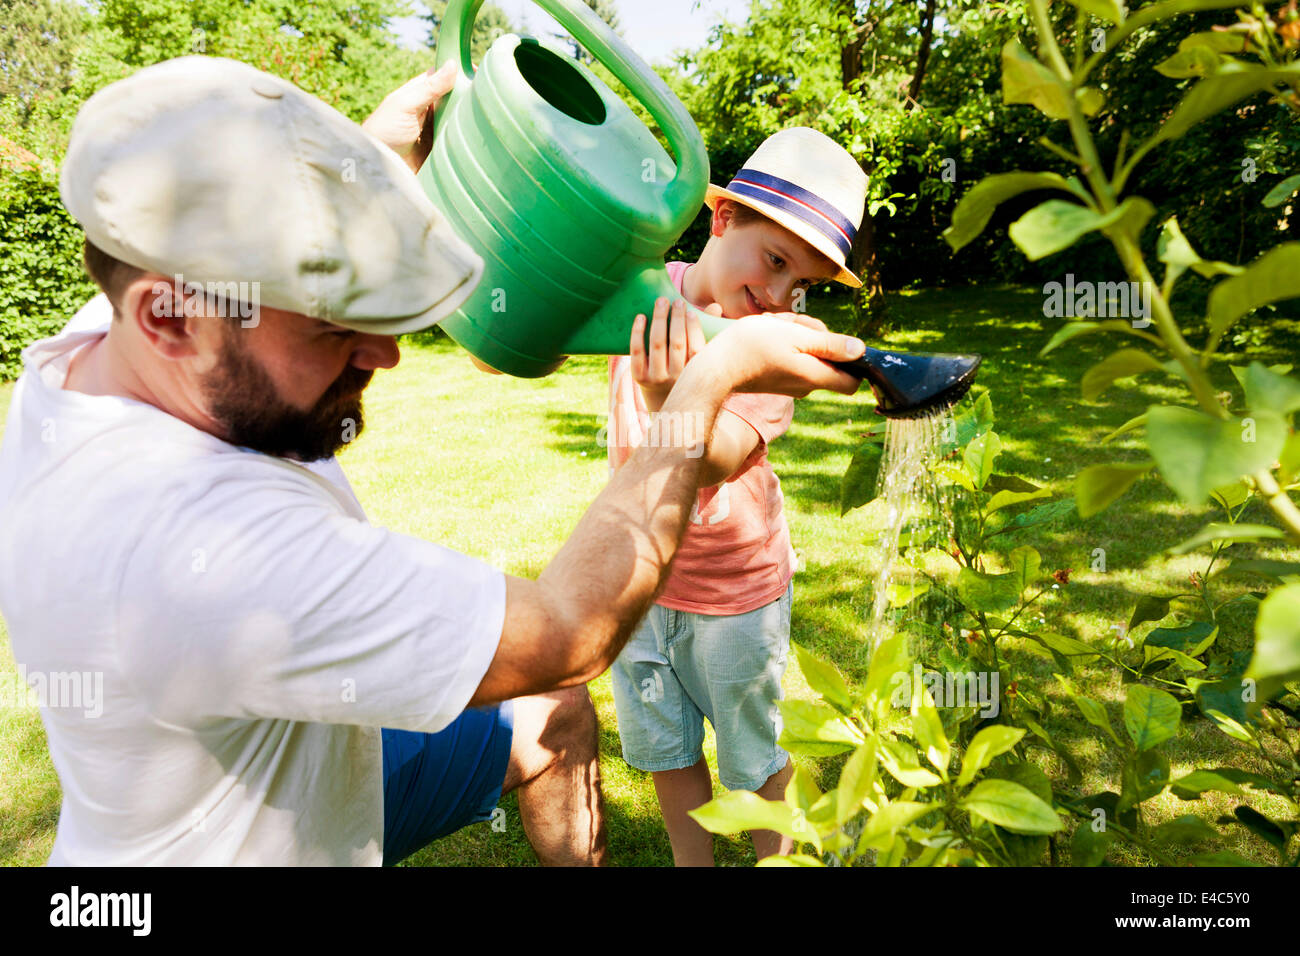 Father and son watering plants, Munich, Bavaria, Germany - Stock Image